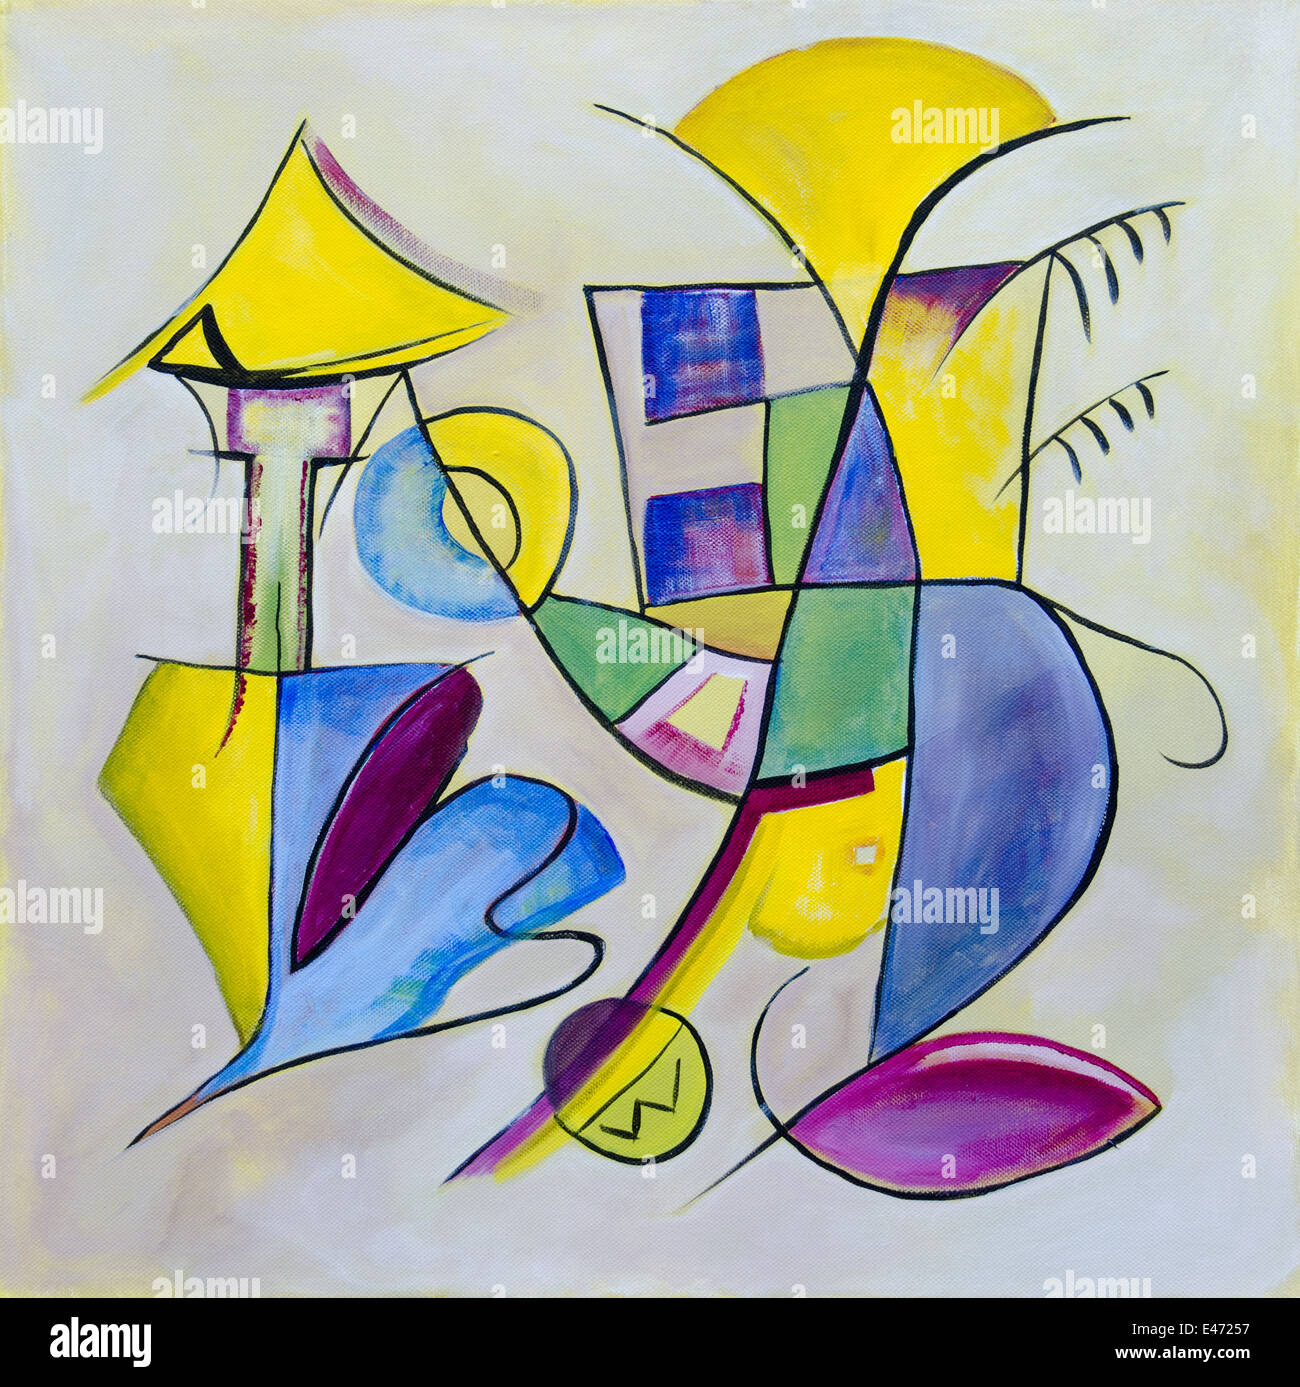 Abstract art, contemporary painting - Stock Image